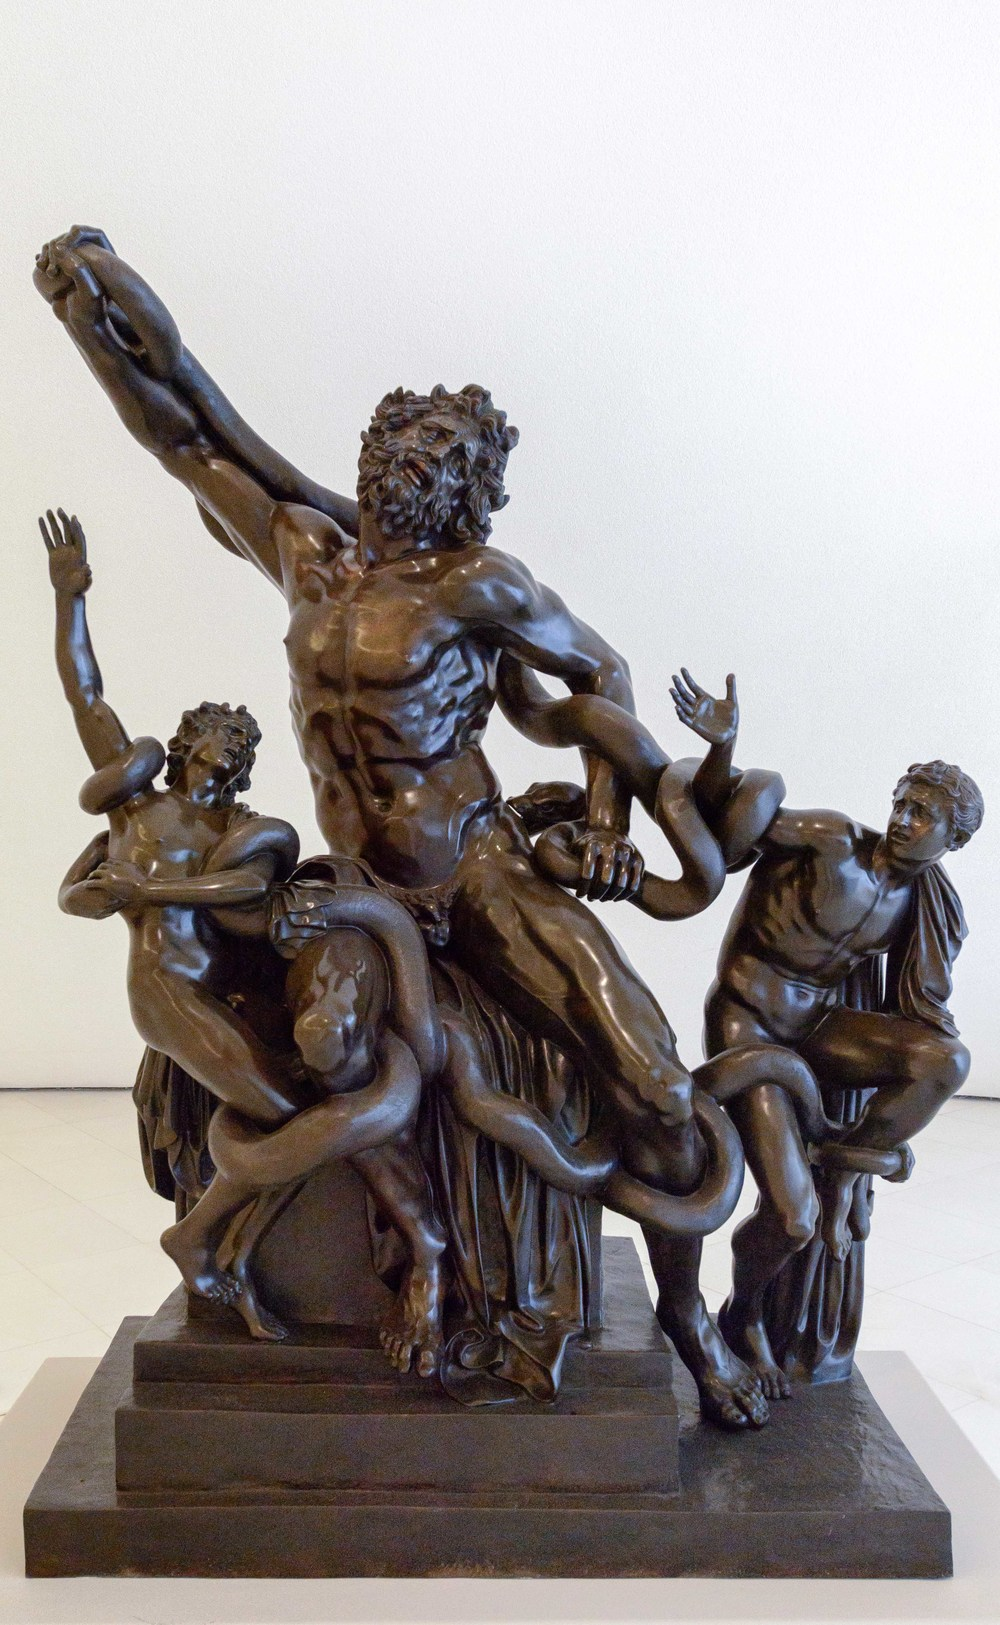 Laocoon and his Sons, Miguel Angel Buonarroti.